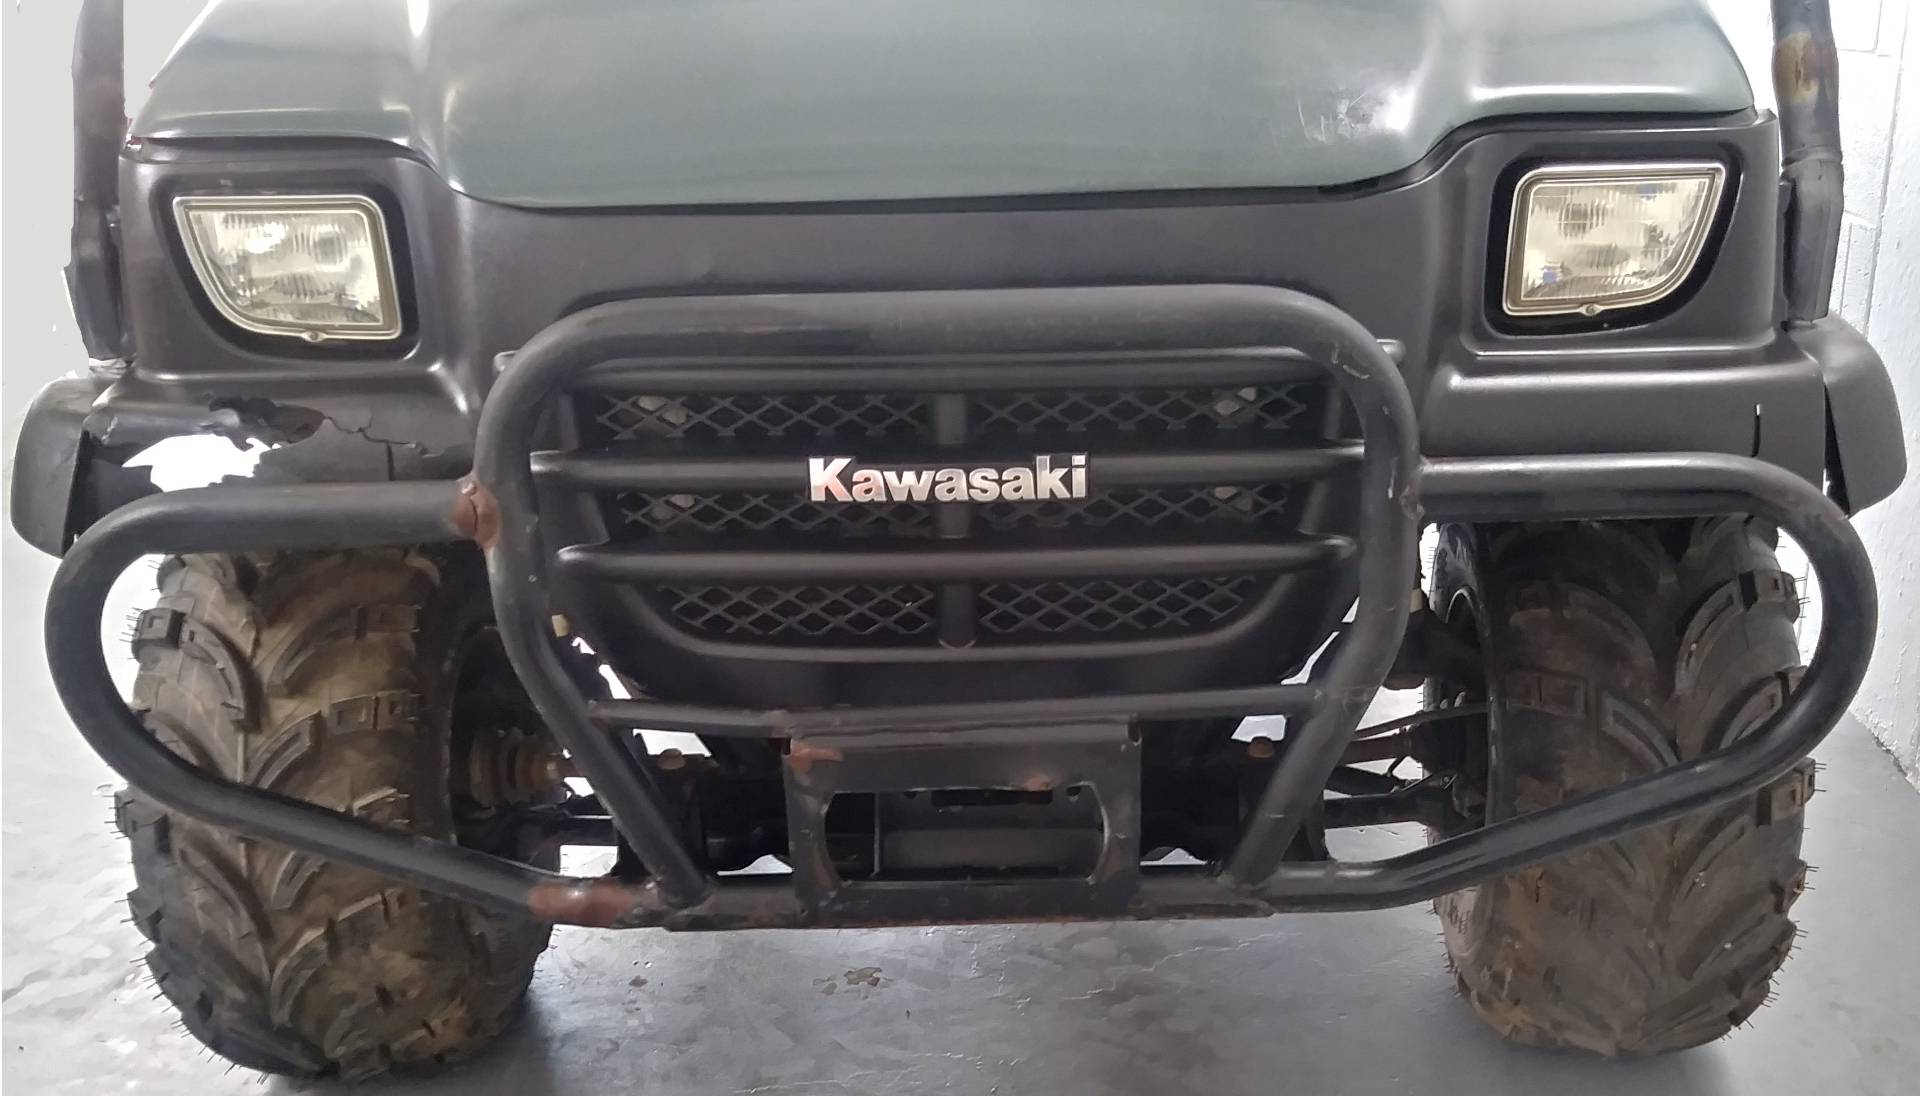 2007 kawasaki mule™ 3010 4x4 in stillwater, oklahoma - photo 3